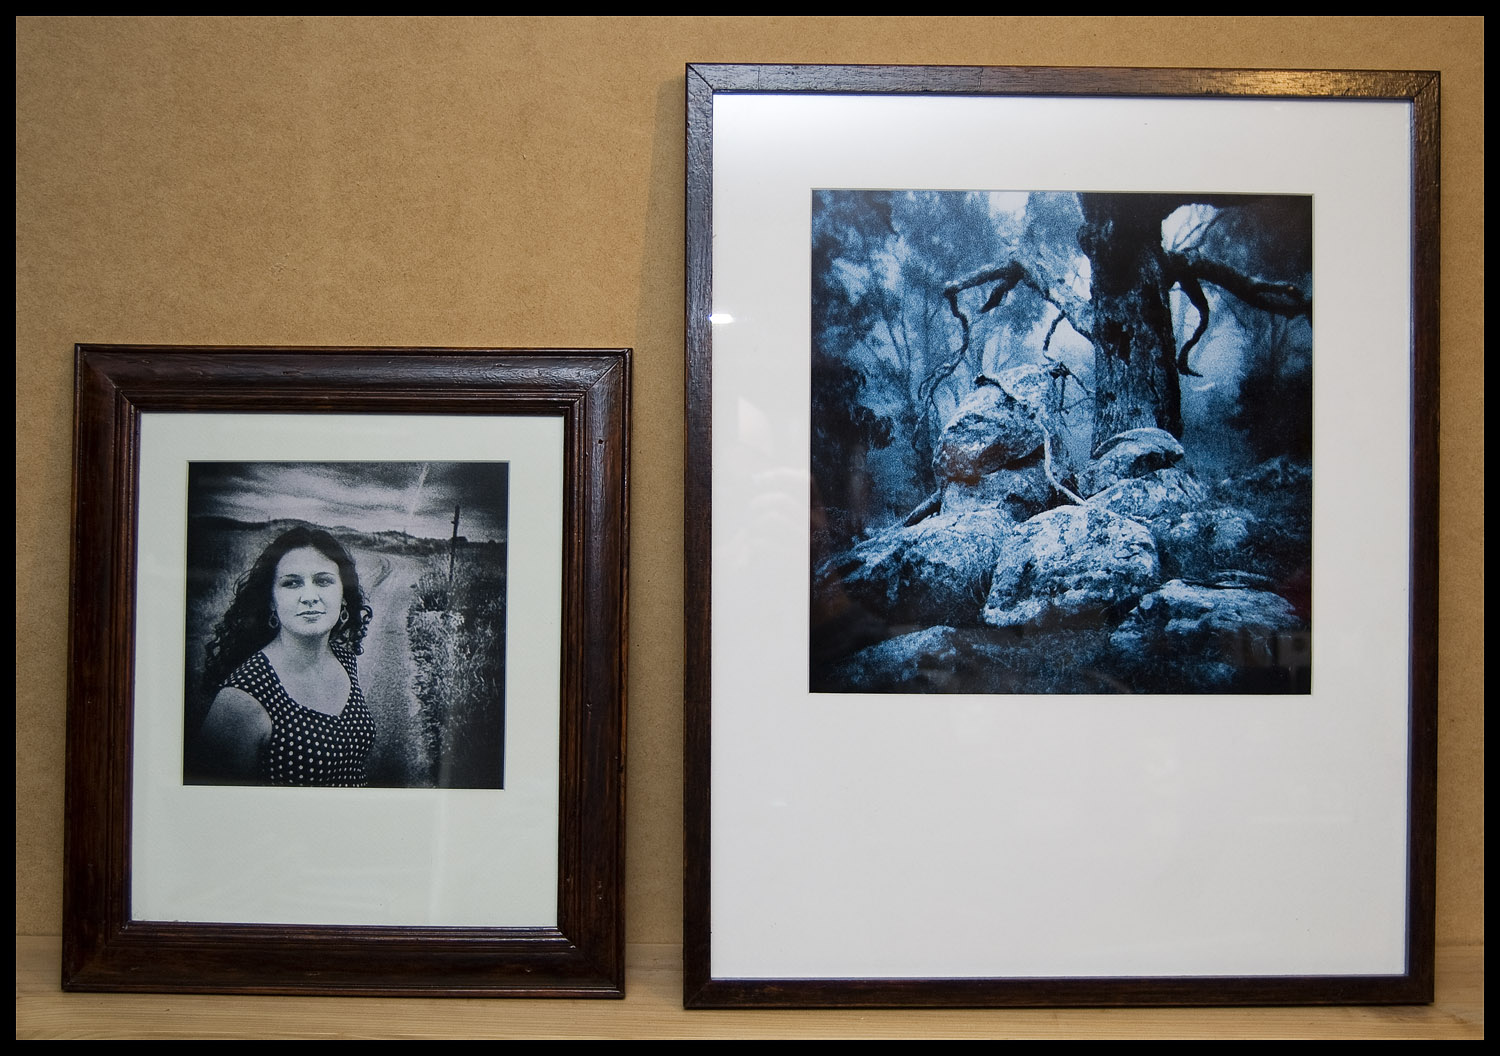 Steve's renovated frames and framed prints